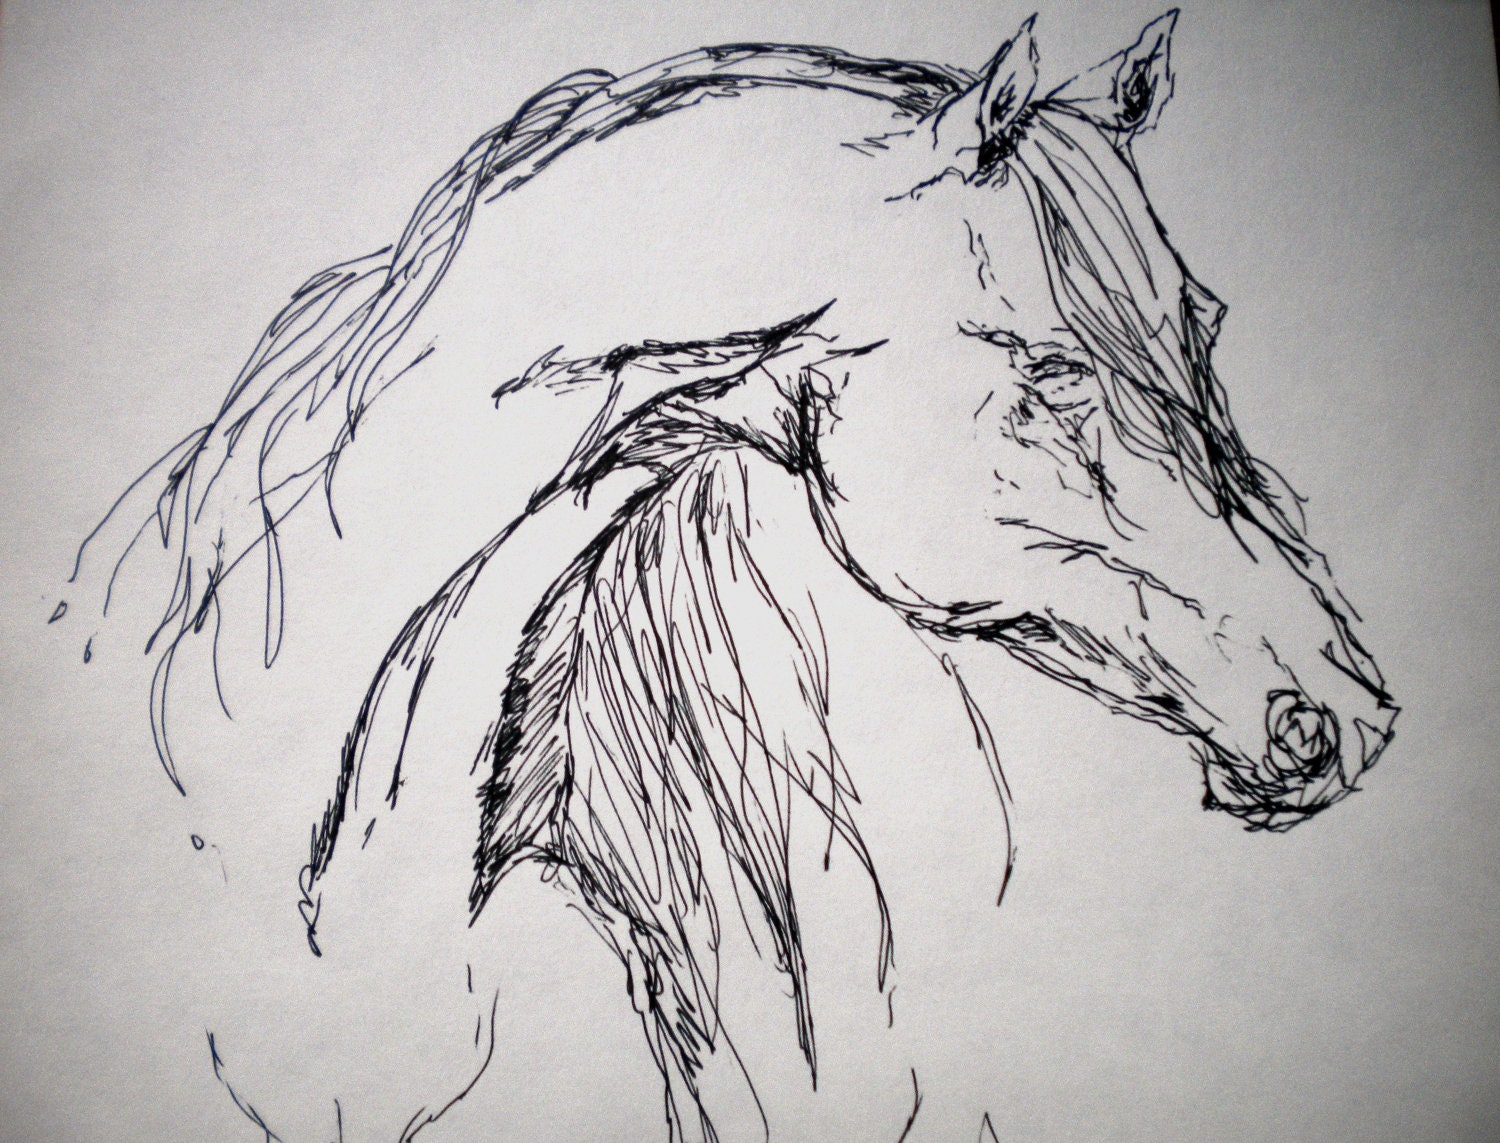 Arabian horse sketch simple and elegant for Ink drawings easy